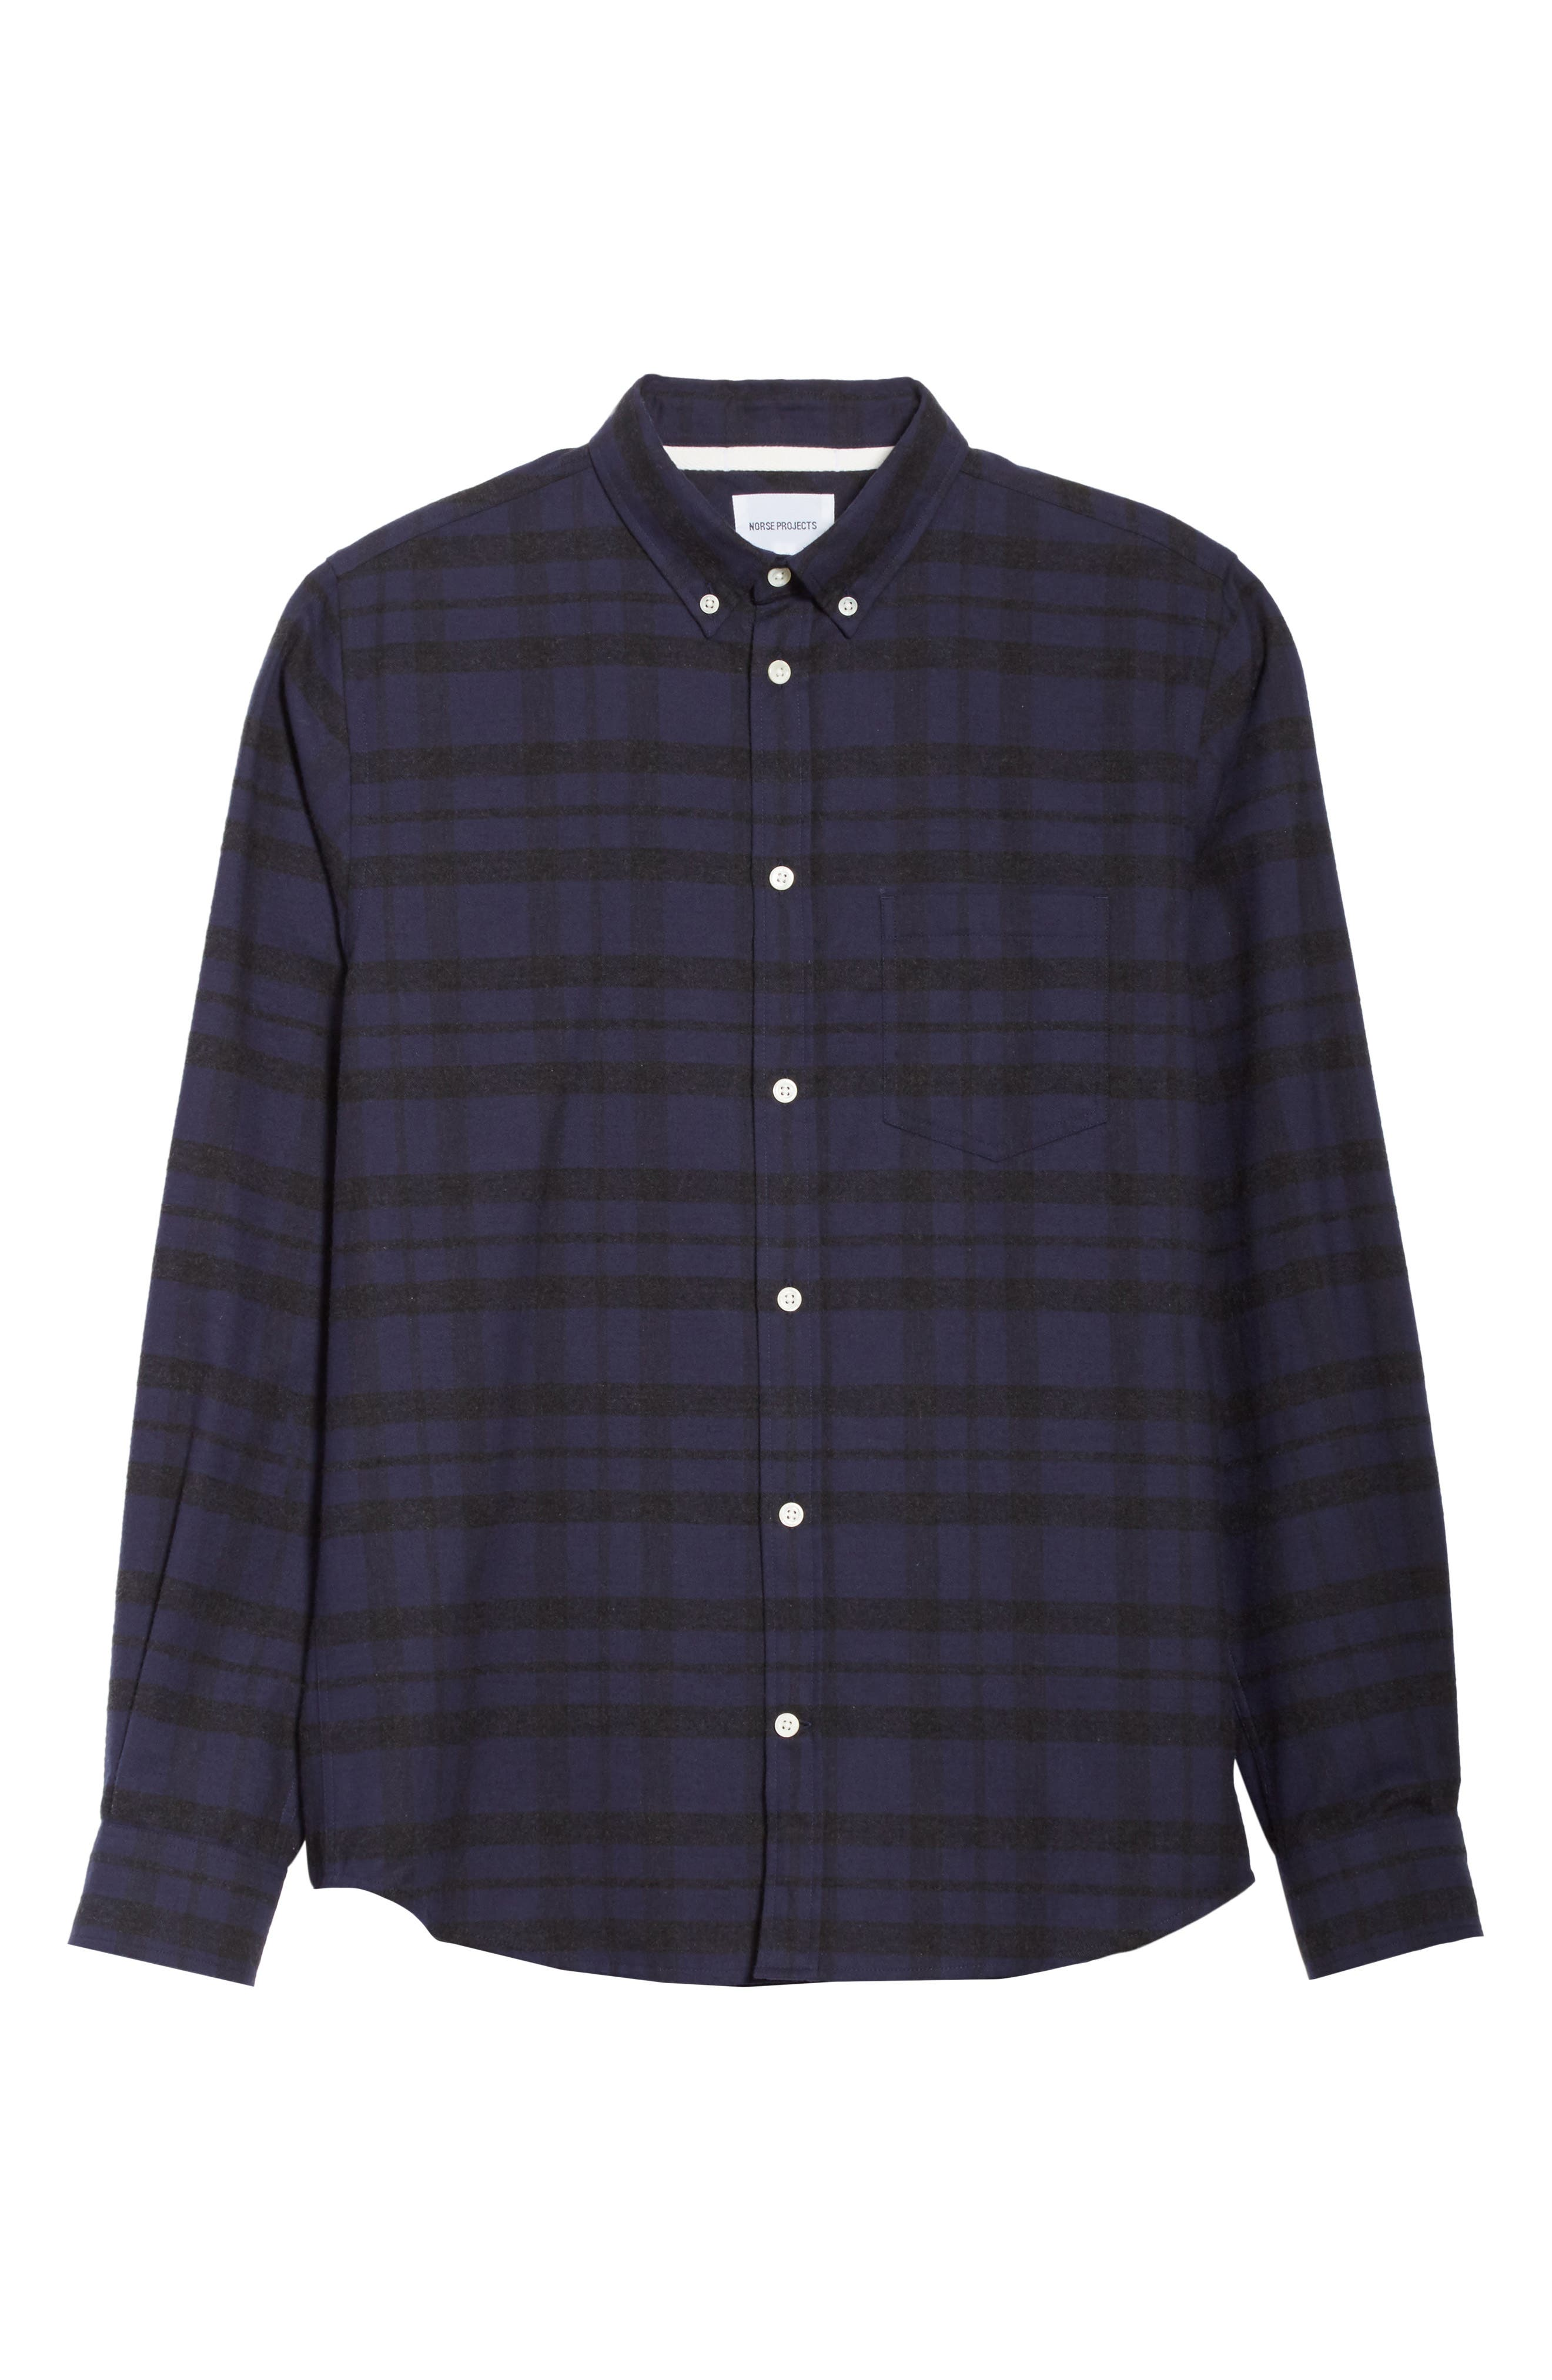 Anton Check Shirt,                             Alternate thumbnail 6, color,                             010